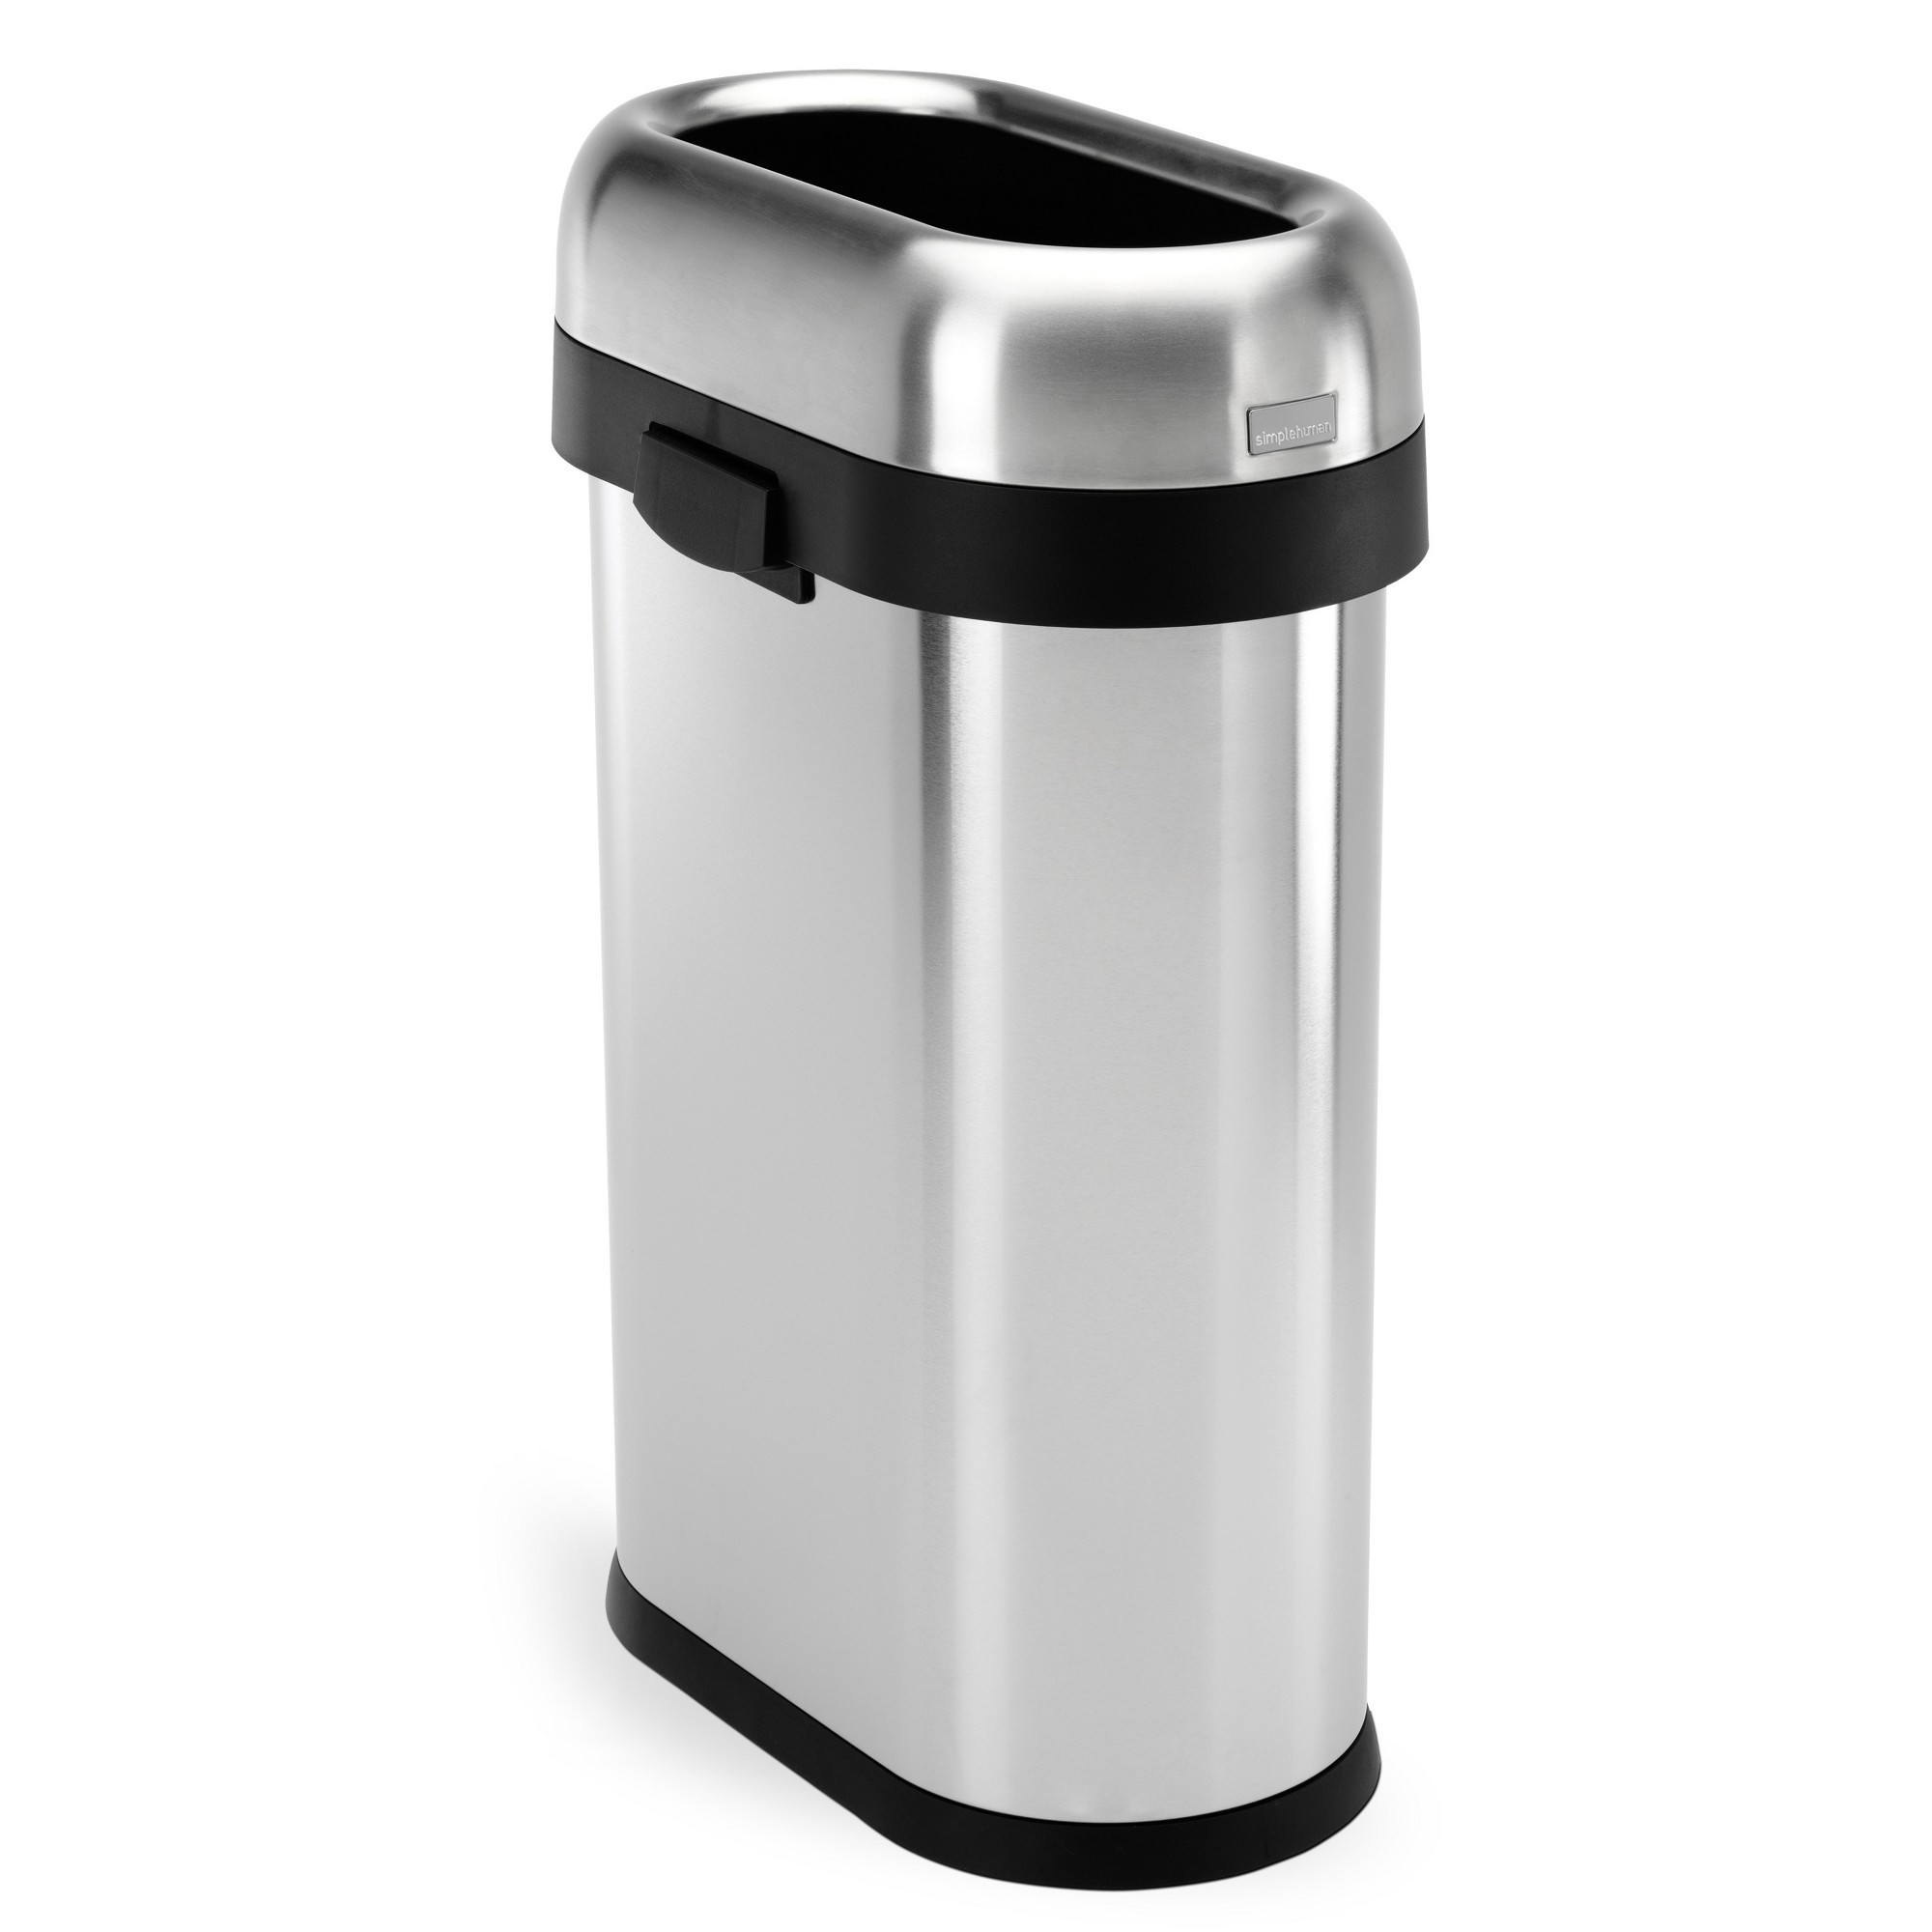 simplehuman 50 Liter Slim Open Top Trash Can, Commercial Grade ...